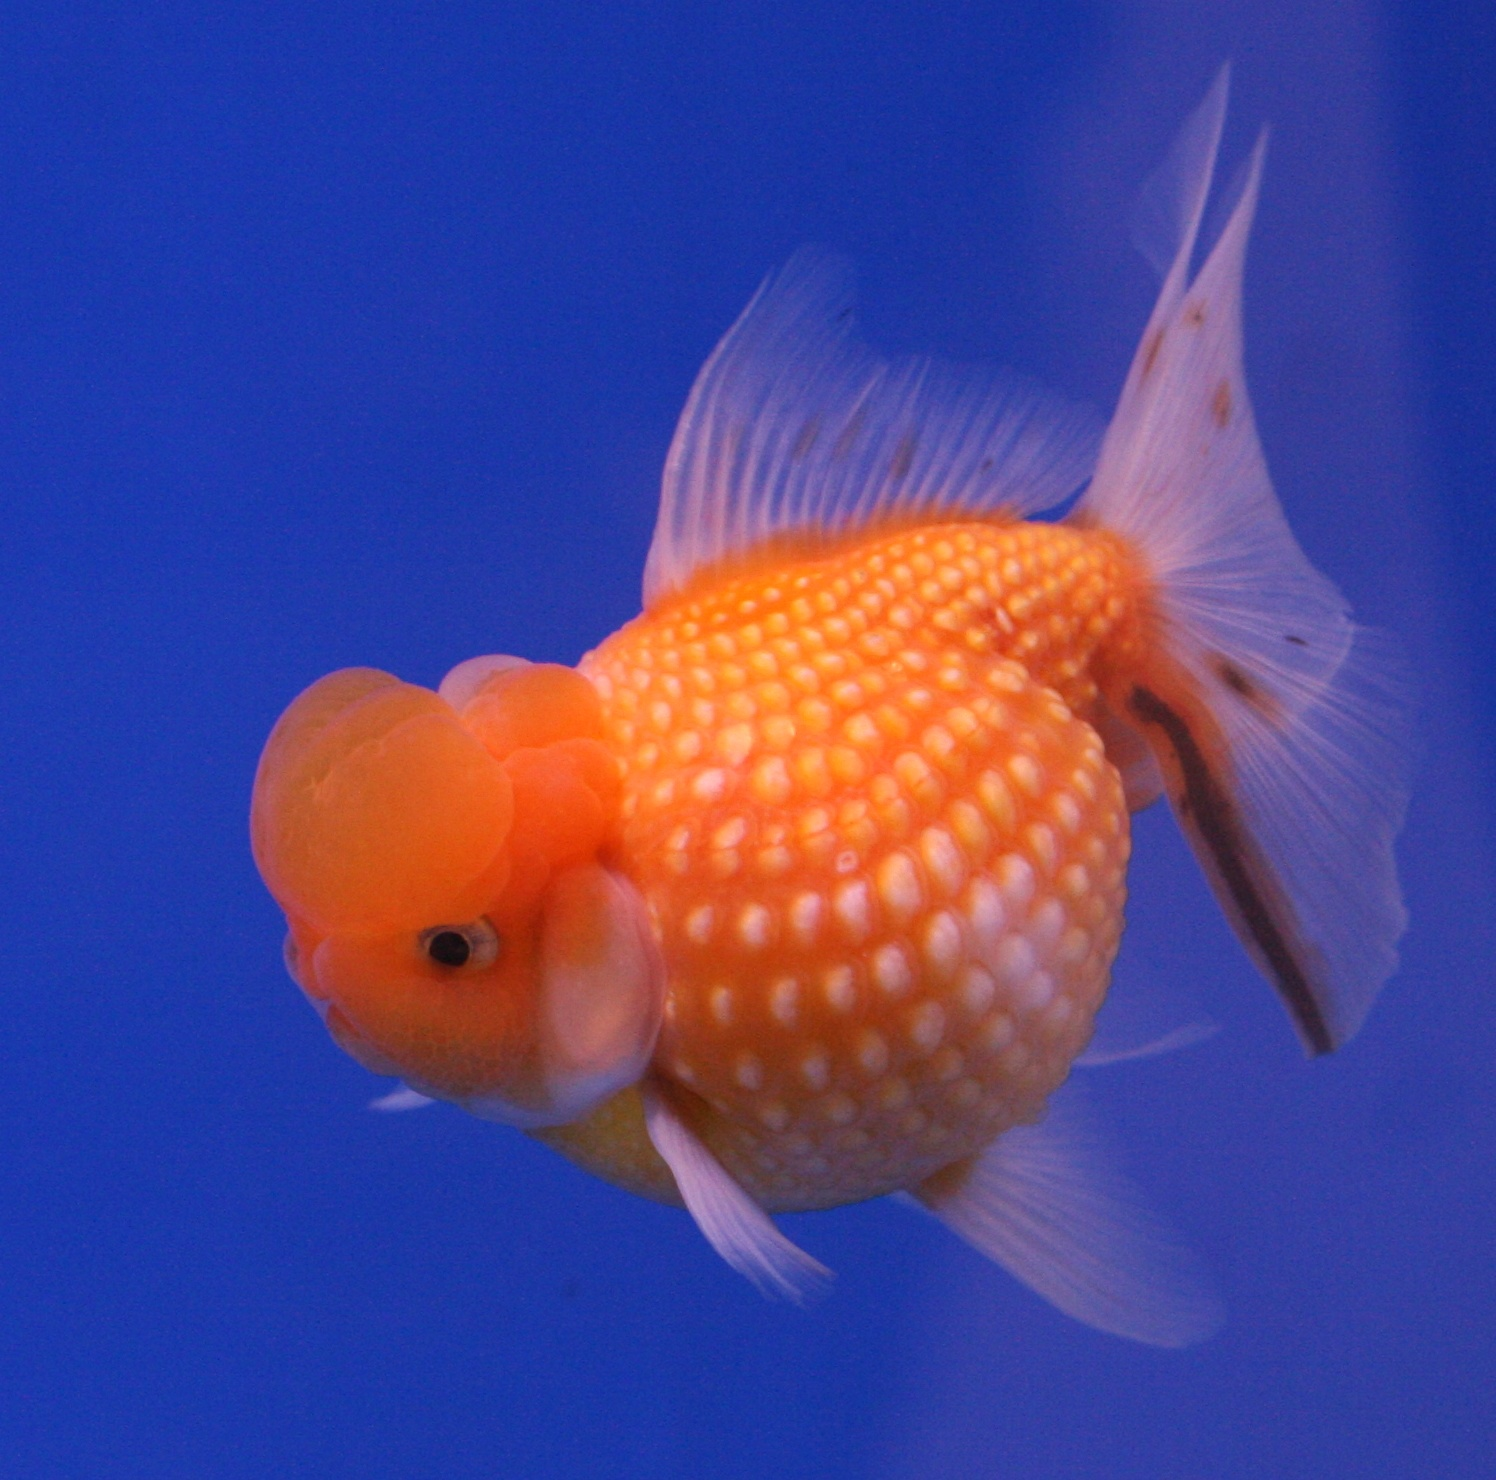 Pearlscale wikipedia for Enfermedades de peces goldfish